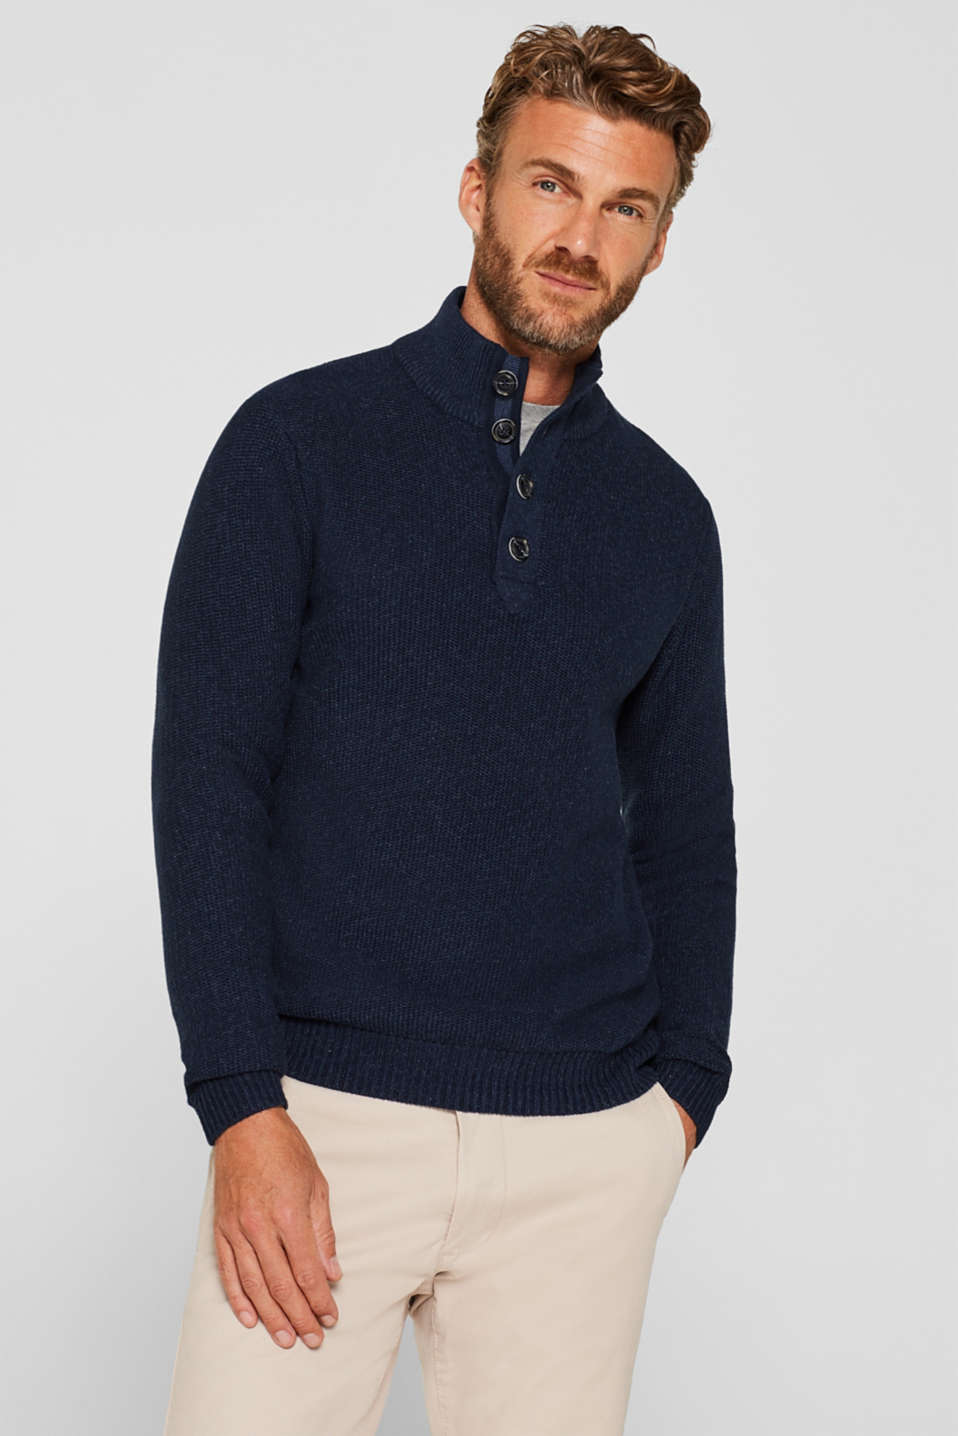 Knitted button-neck jumper in 100% cotton